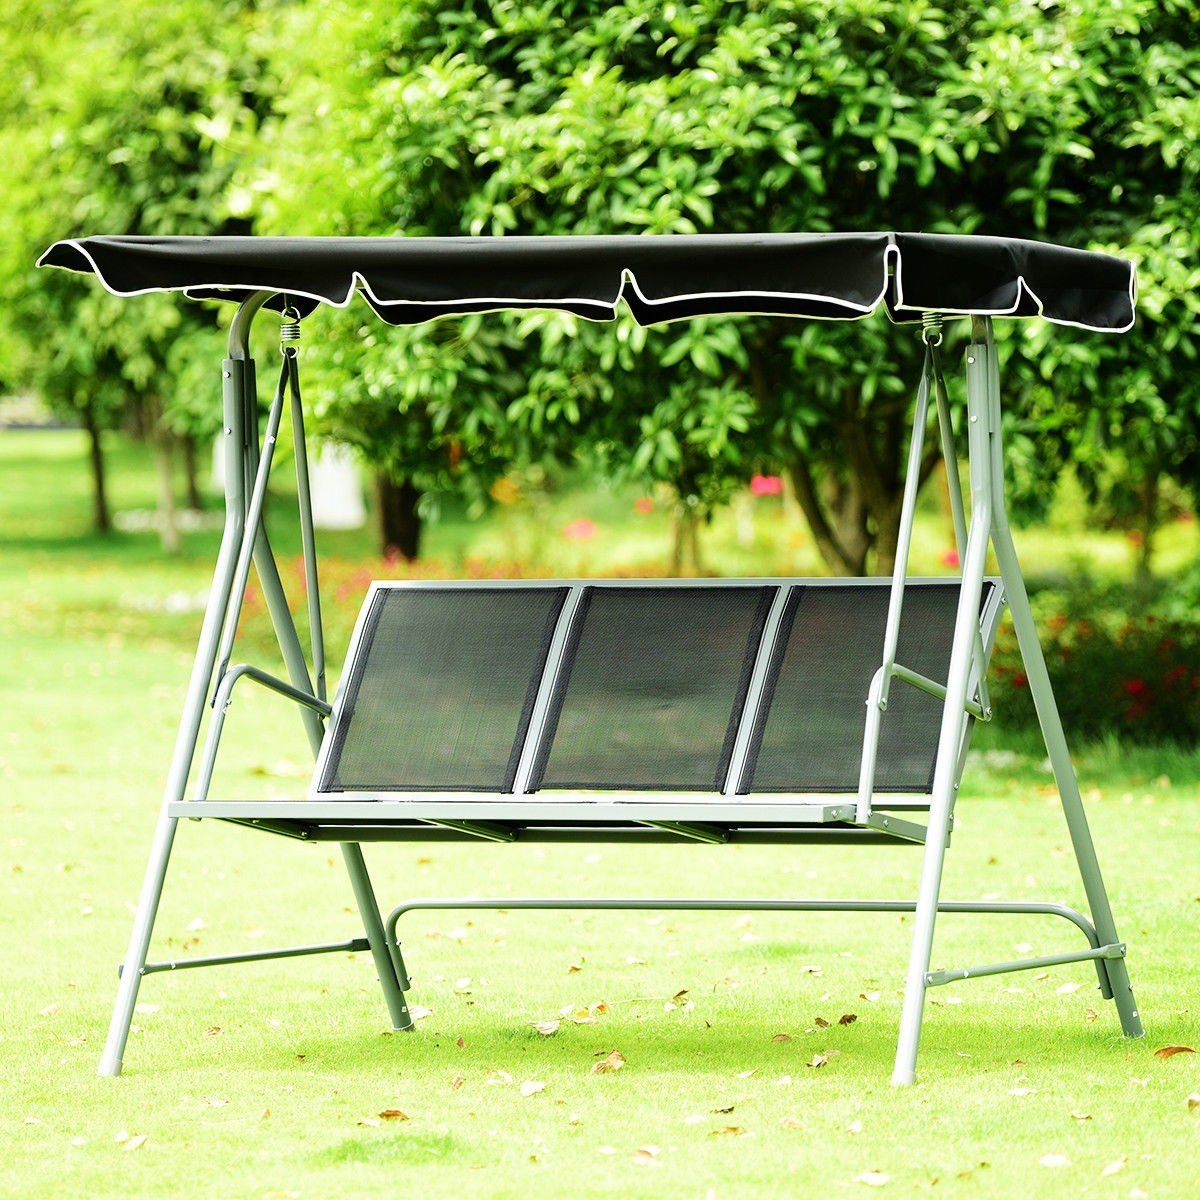 3 Persons Patio Powder Finish Canopy Deck Swing Bench Outdoor Sling Chair Swinging Chair Patio Hammock